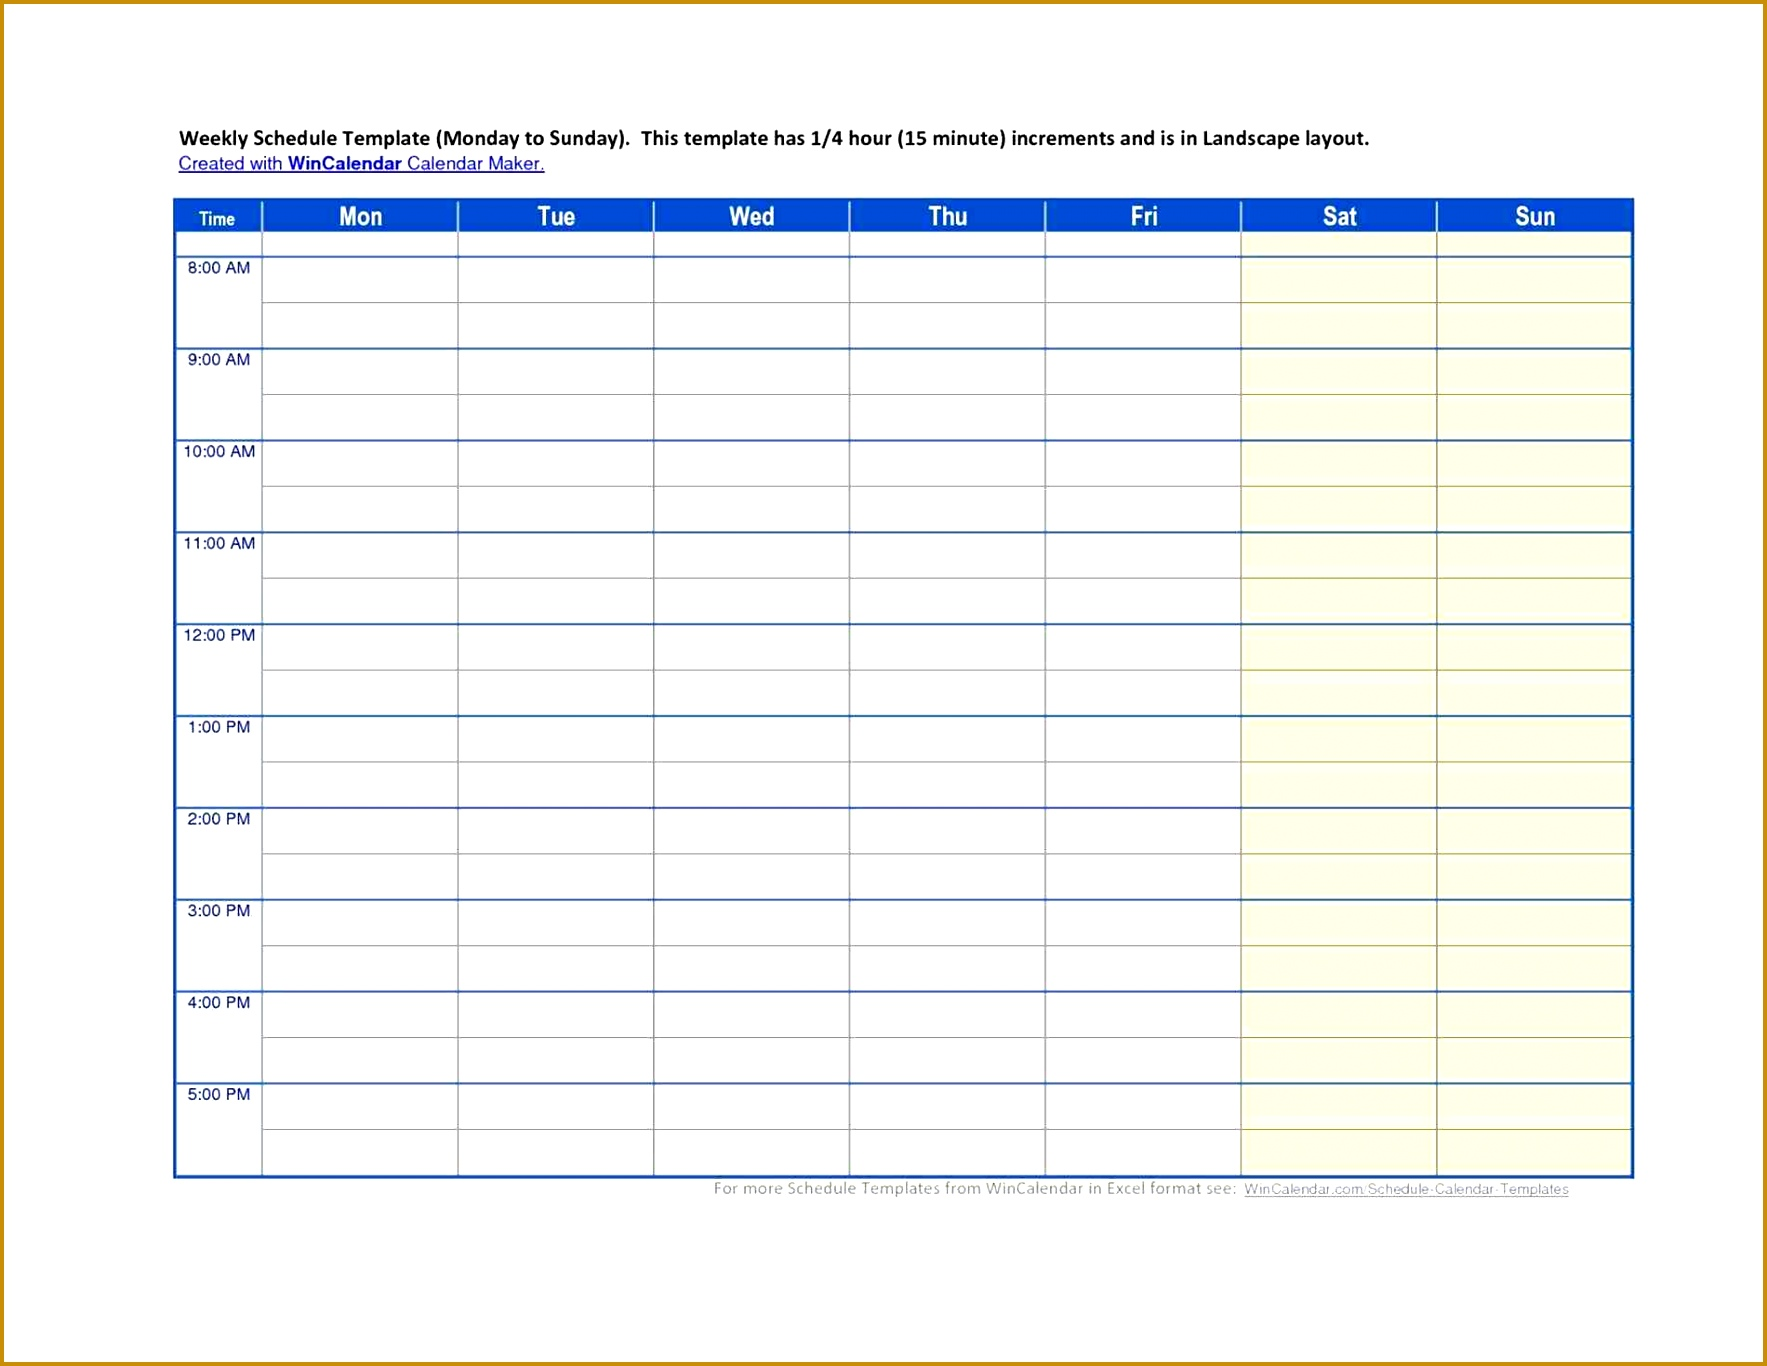 excel Microsoft Excel Schedule Template employee schedule template weekly bussines proposal construction free good resume 13661767